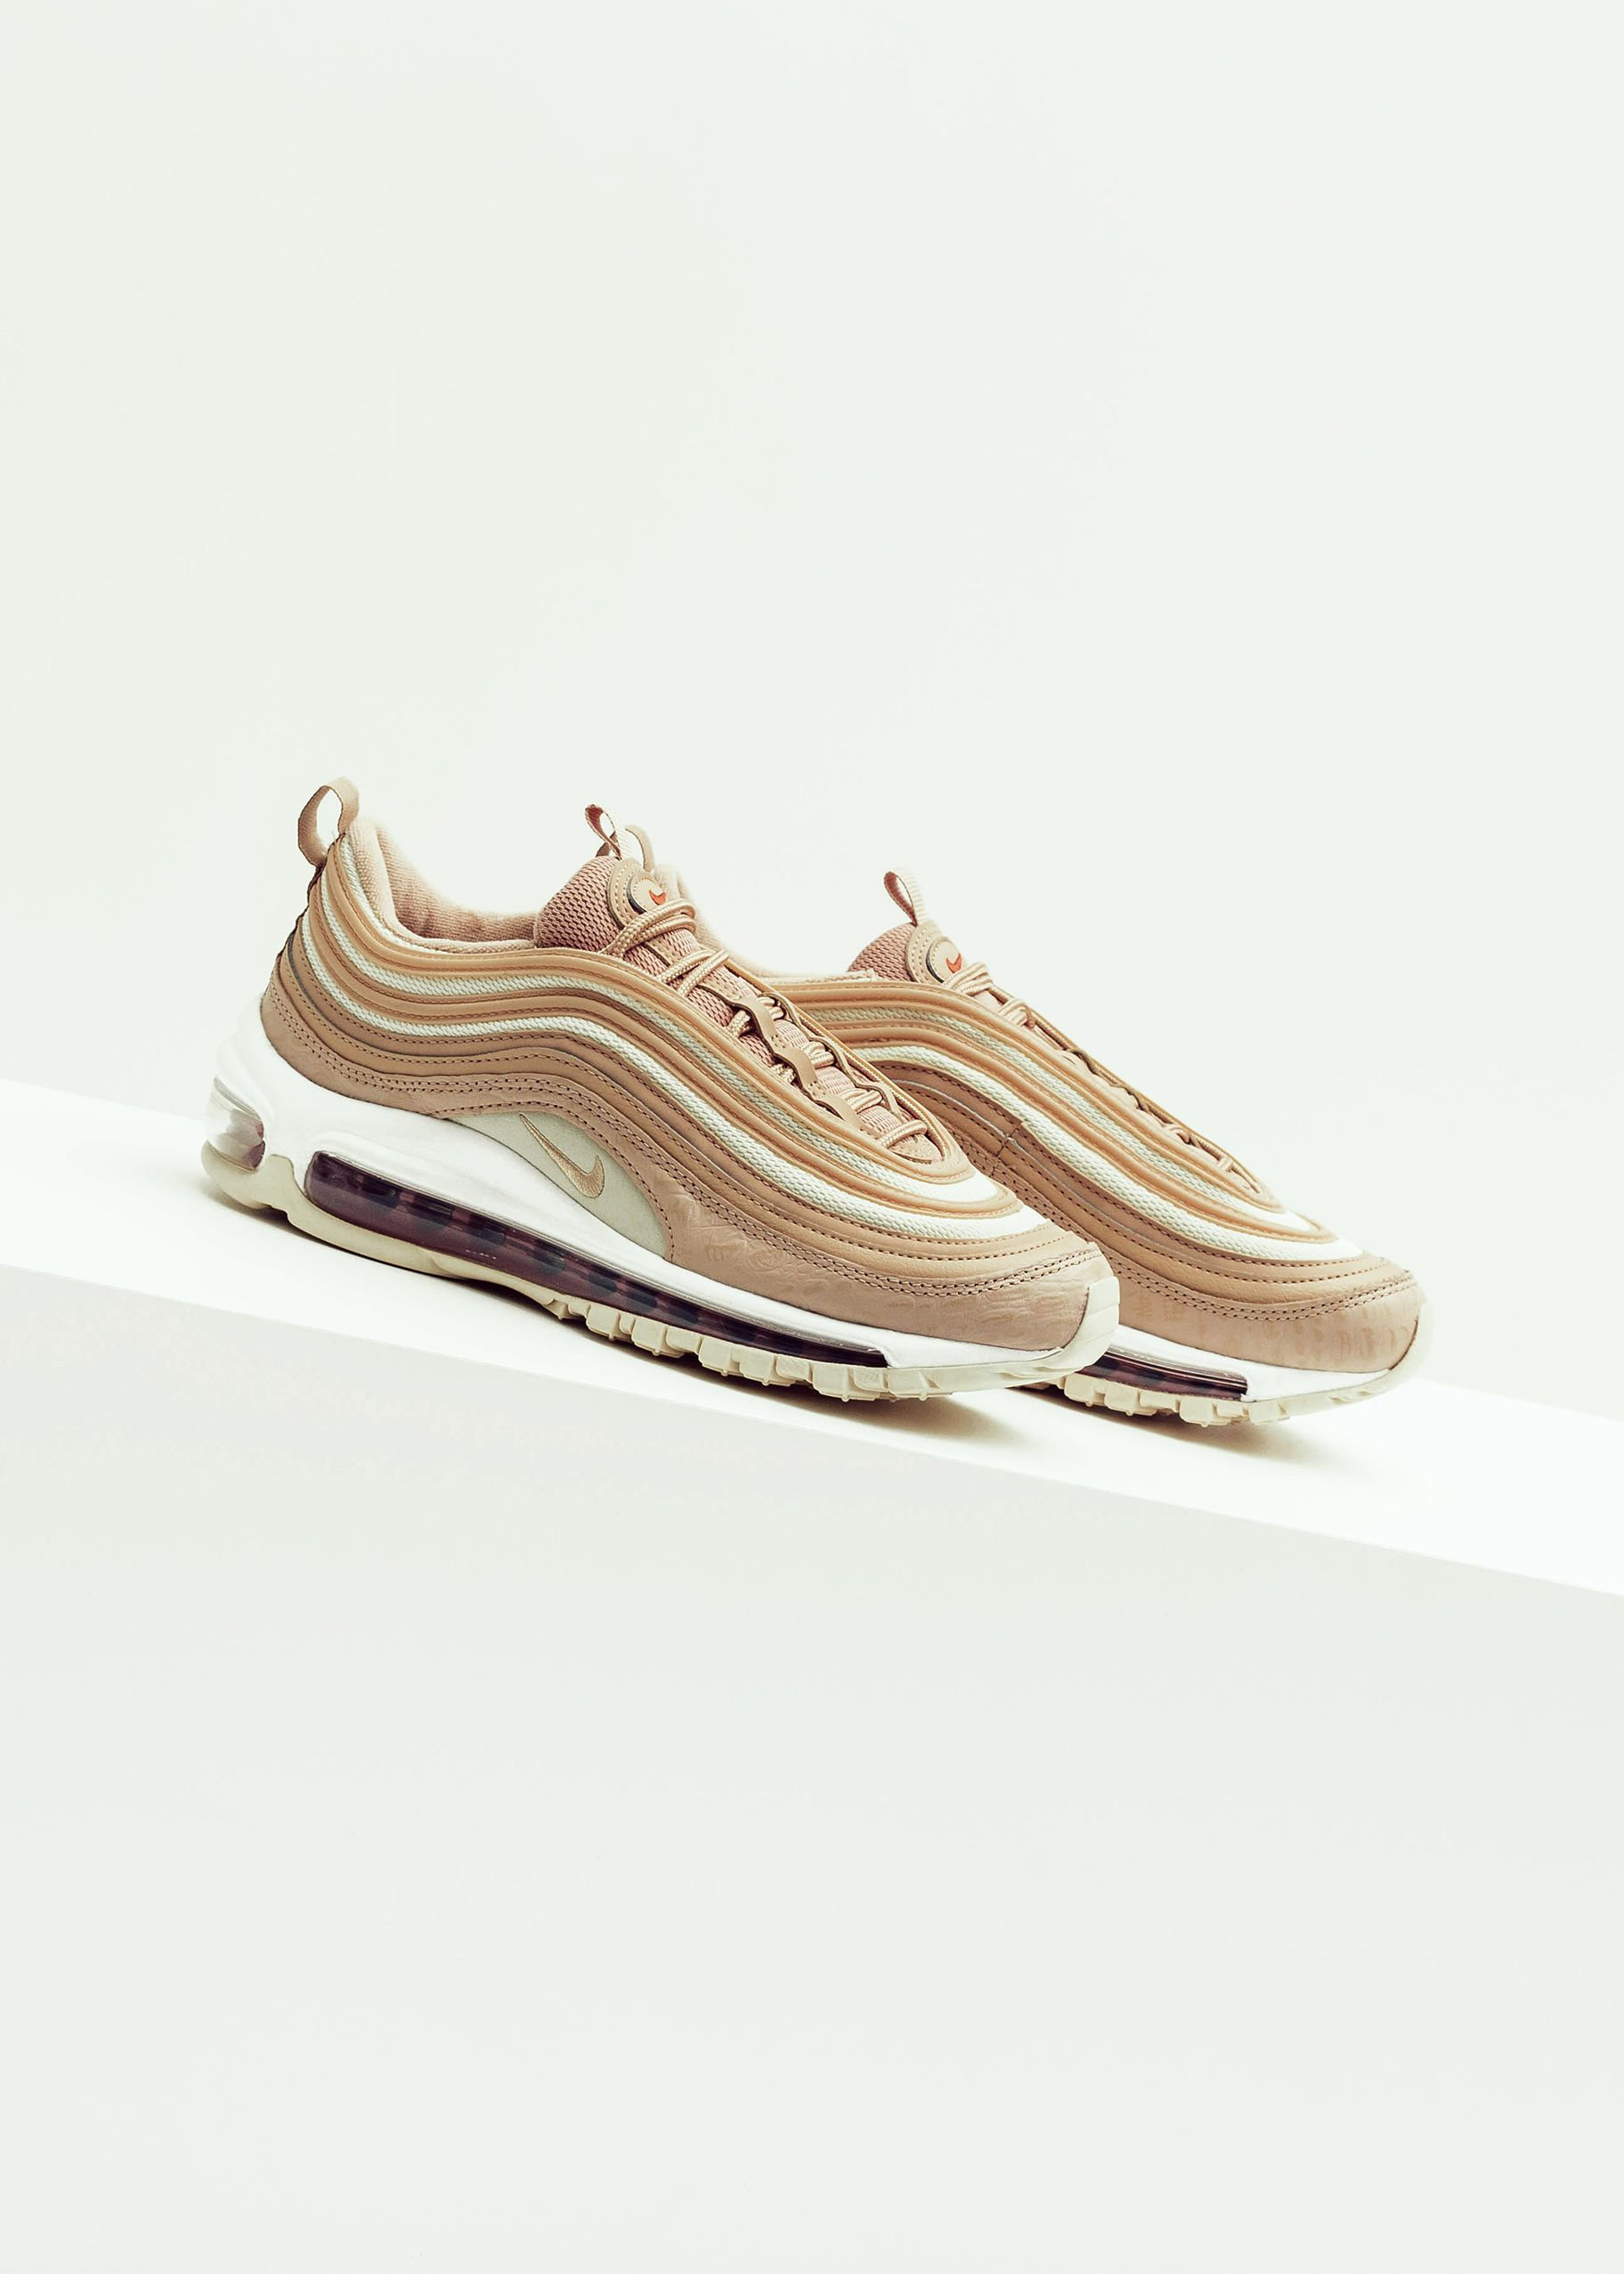 NIKE Air Max 97 Lux bio beigelight carbon | ONYGO